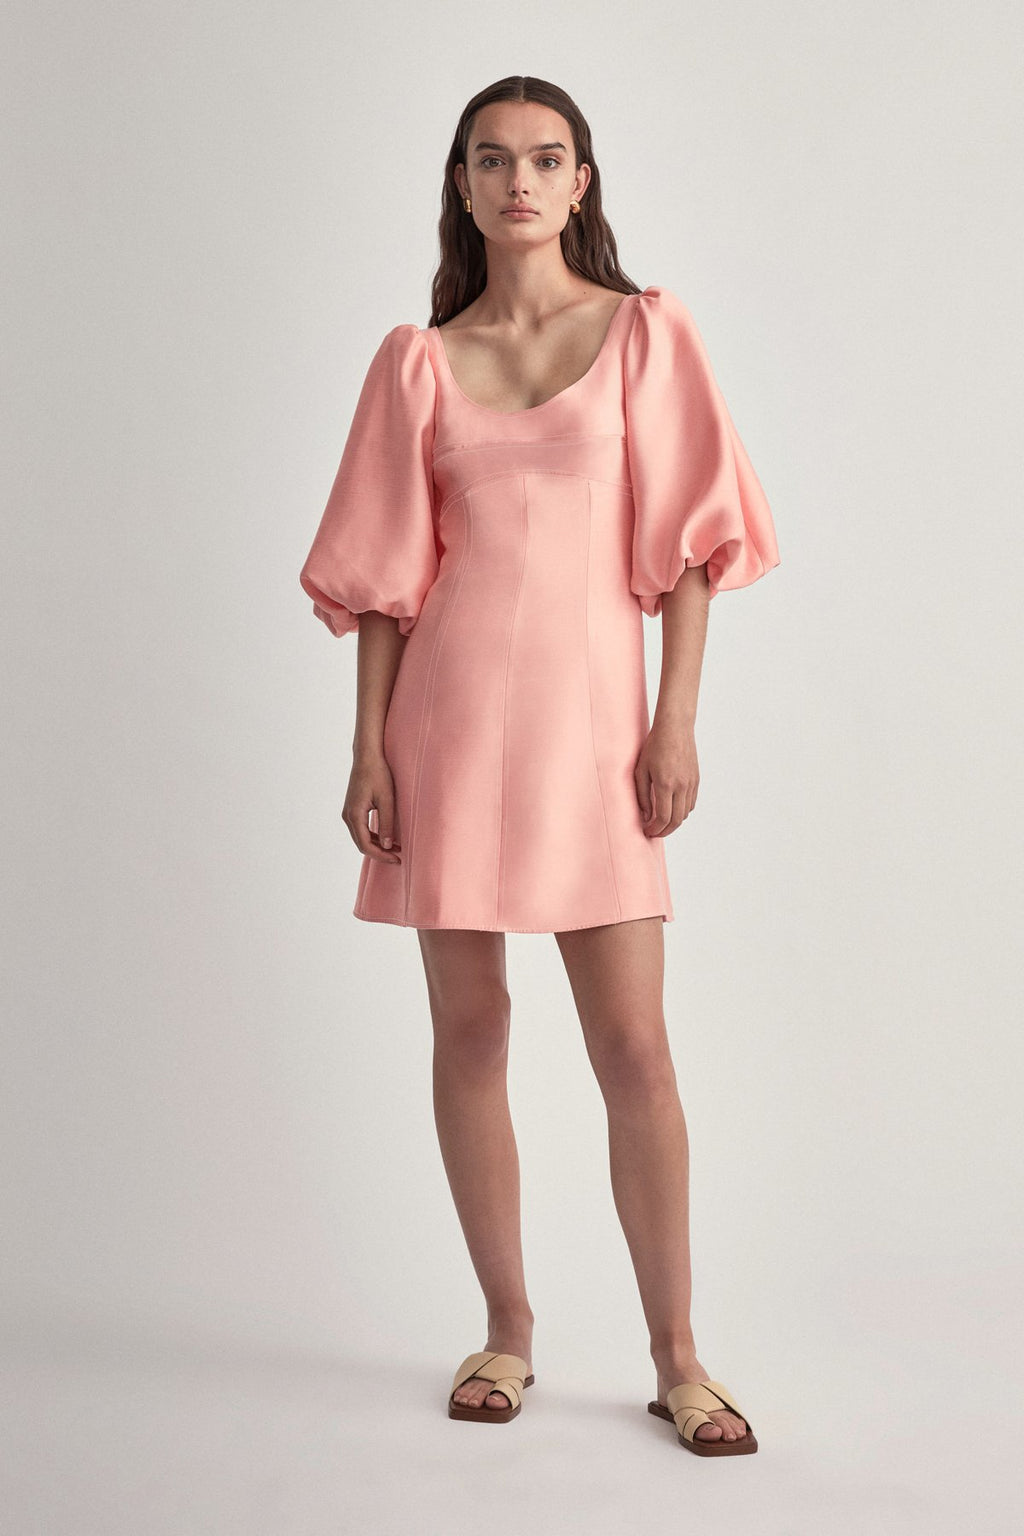 Camilla & Marc Claudia Mini Dress in Salmon